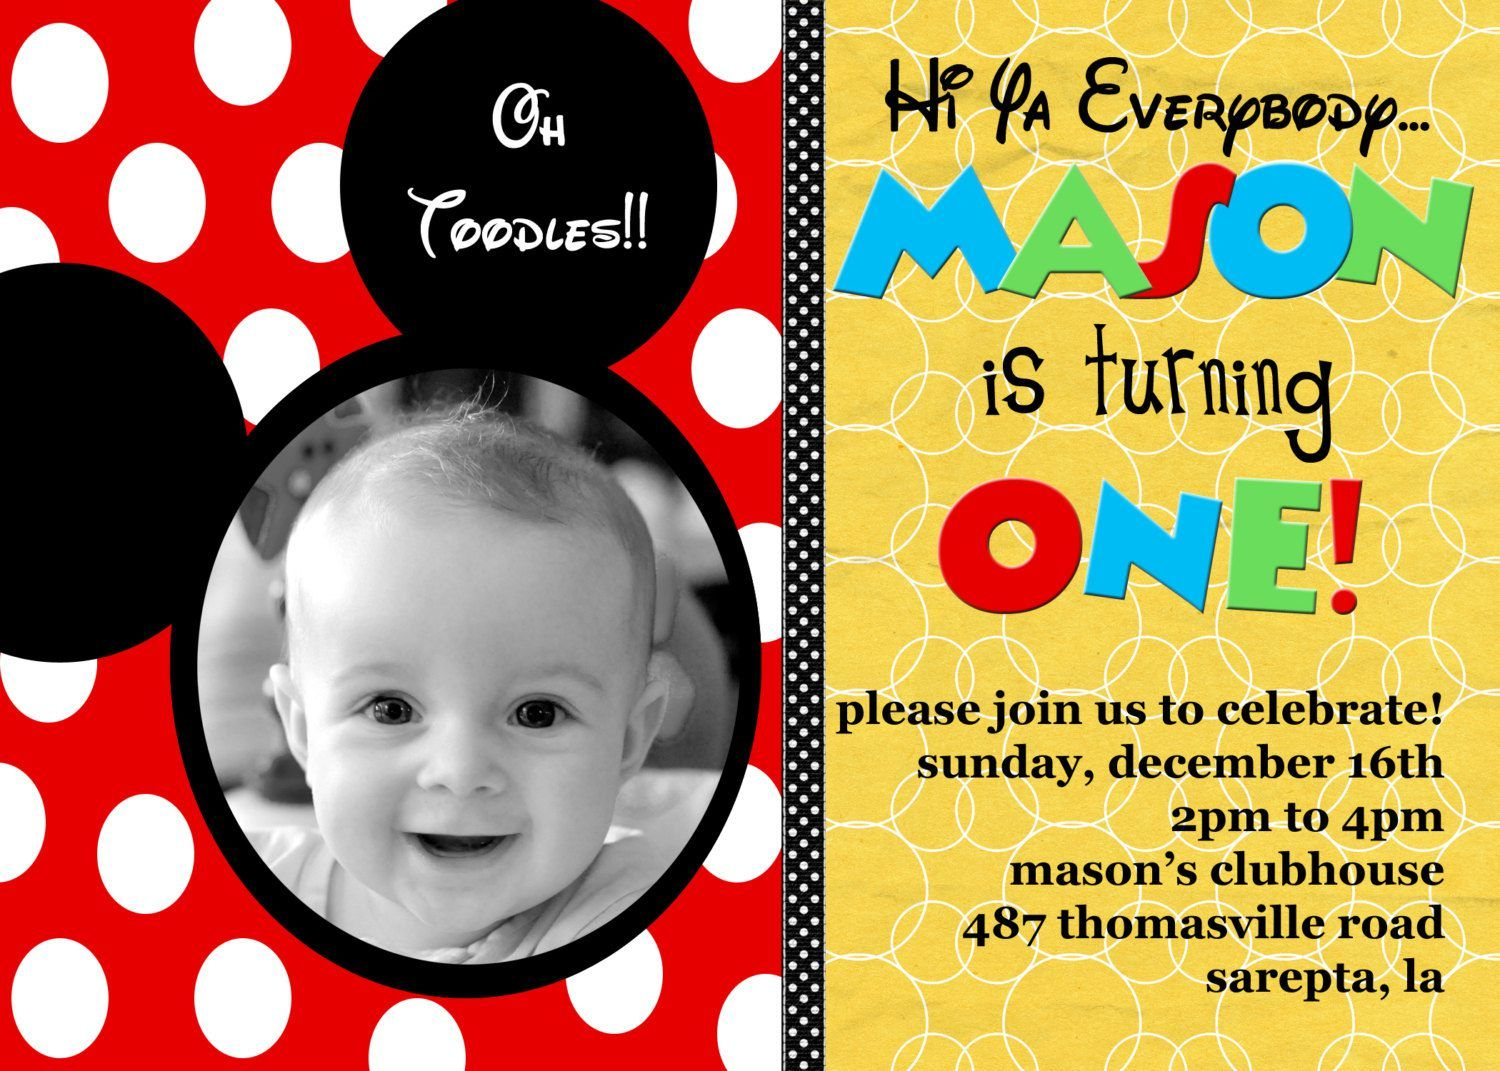 Freeprintablemickeymousebirthdayinvitationcards Birthday - Mickey mouse 1st birthday invitations template